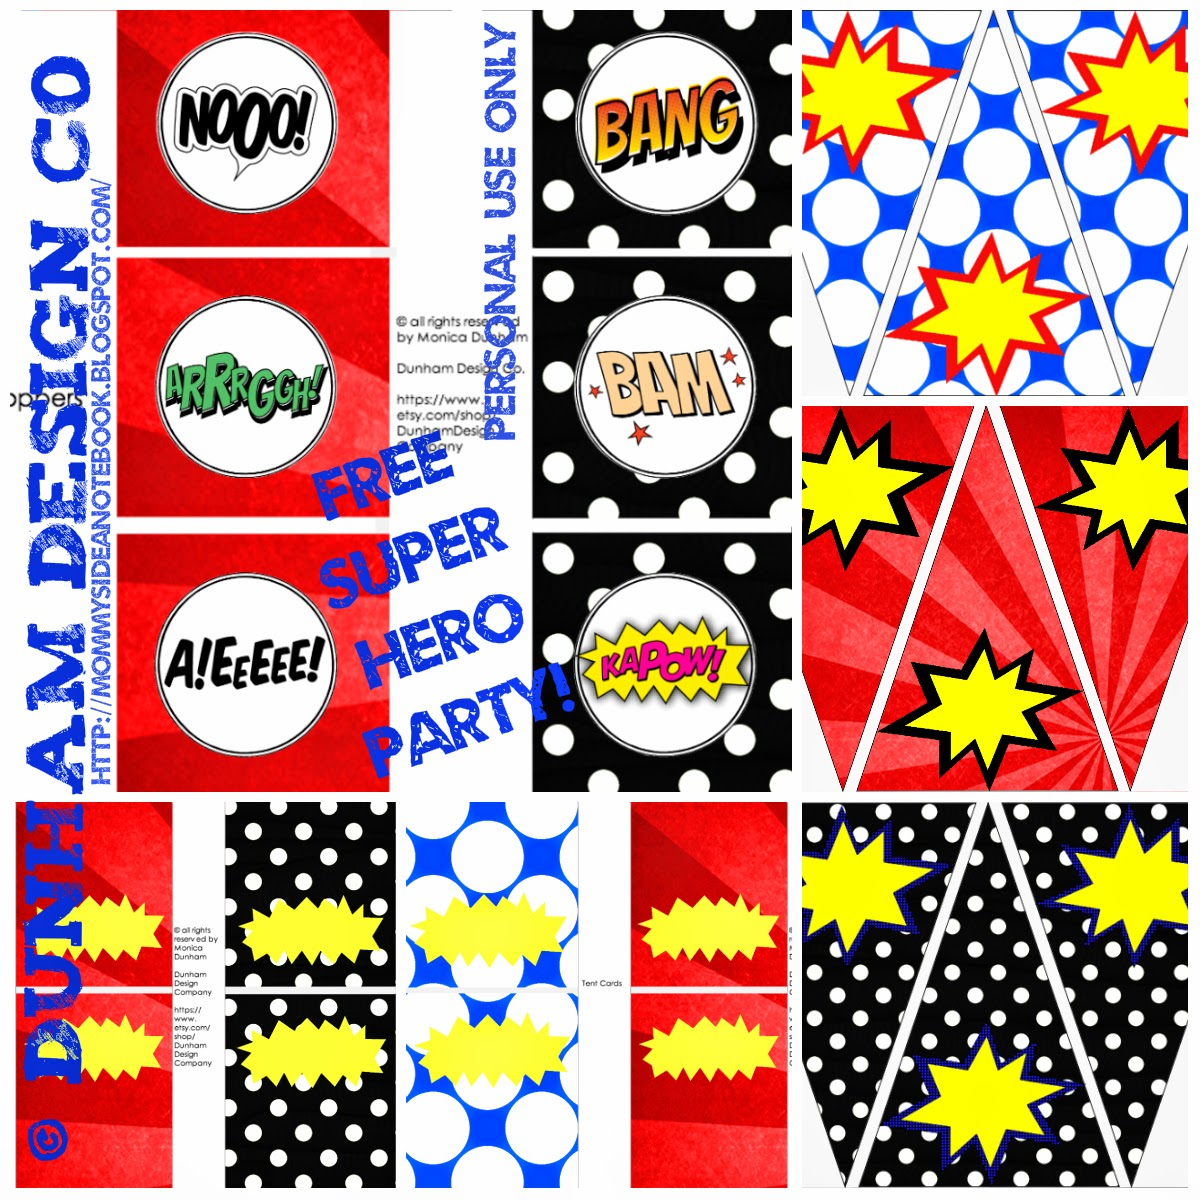 image regarding Free Superhero Party Printable named Dunham Design and style Business: Cost-free Superhero Celebration Printable Coming